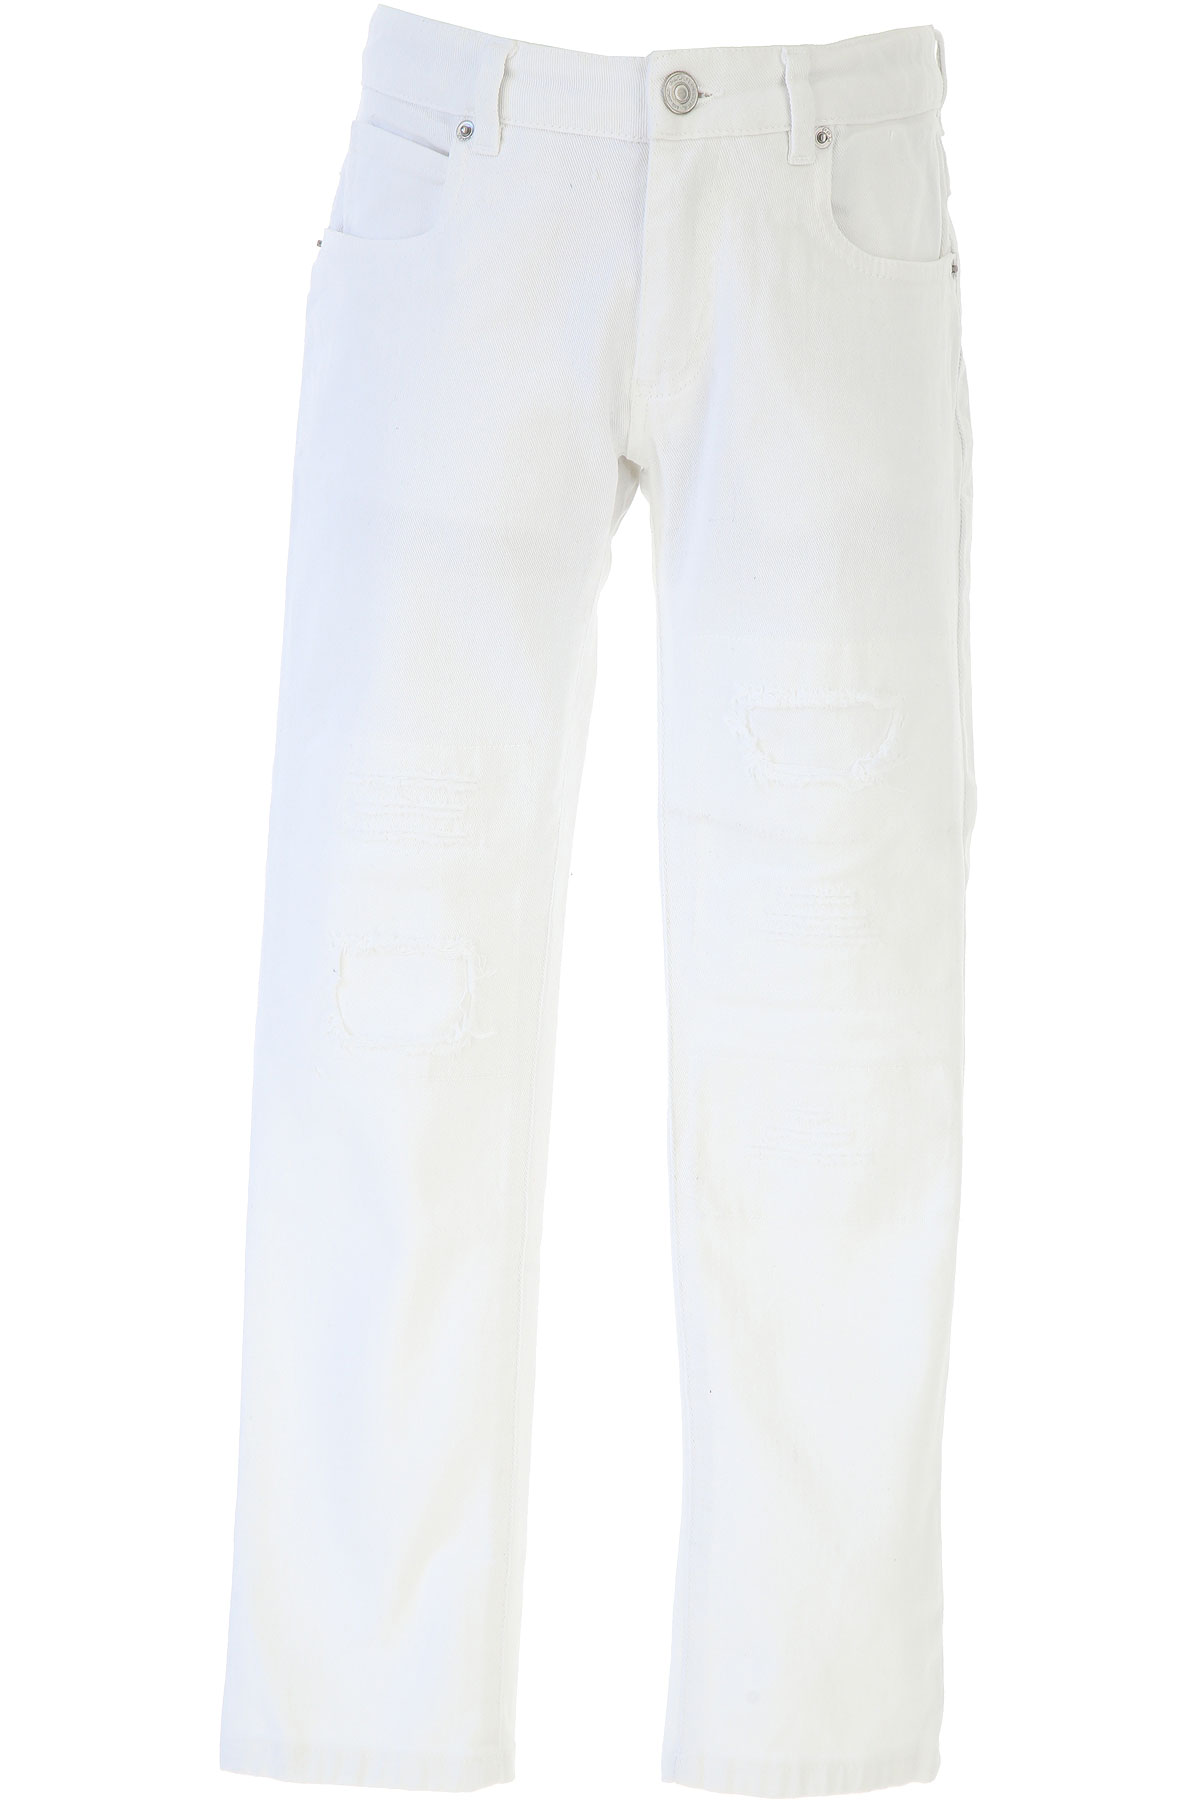 Paolo Pecora Kids Pants for Boys On Sale, White, Cotton, 2019, 12Y 14Y 8Y